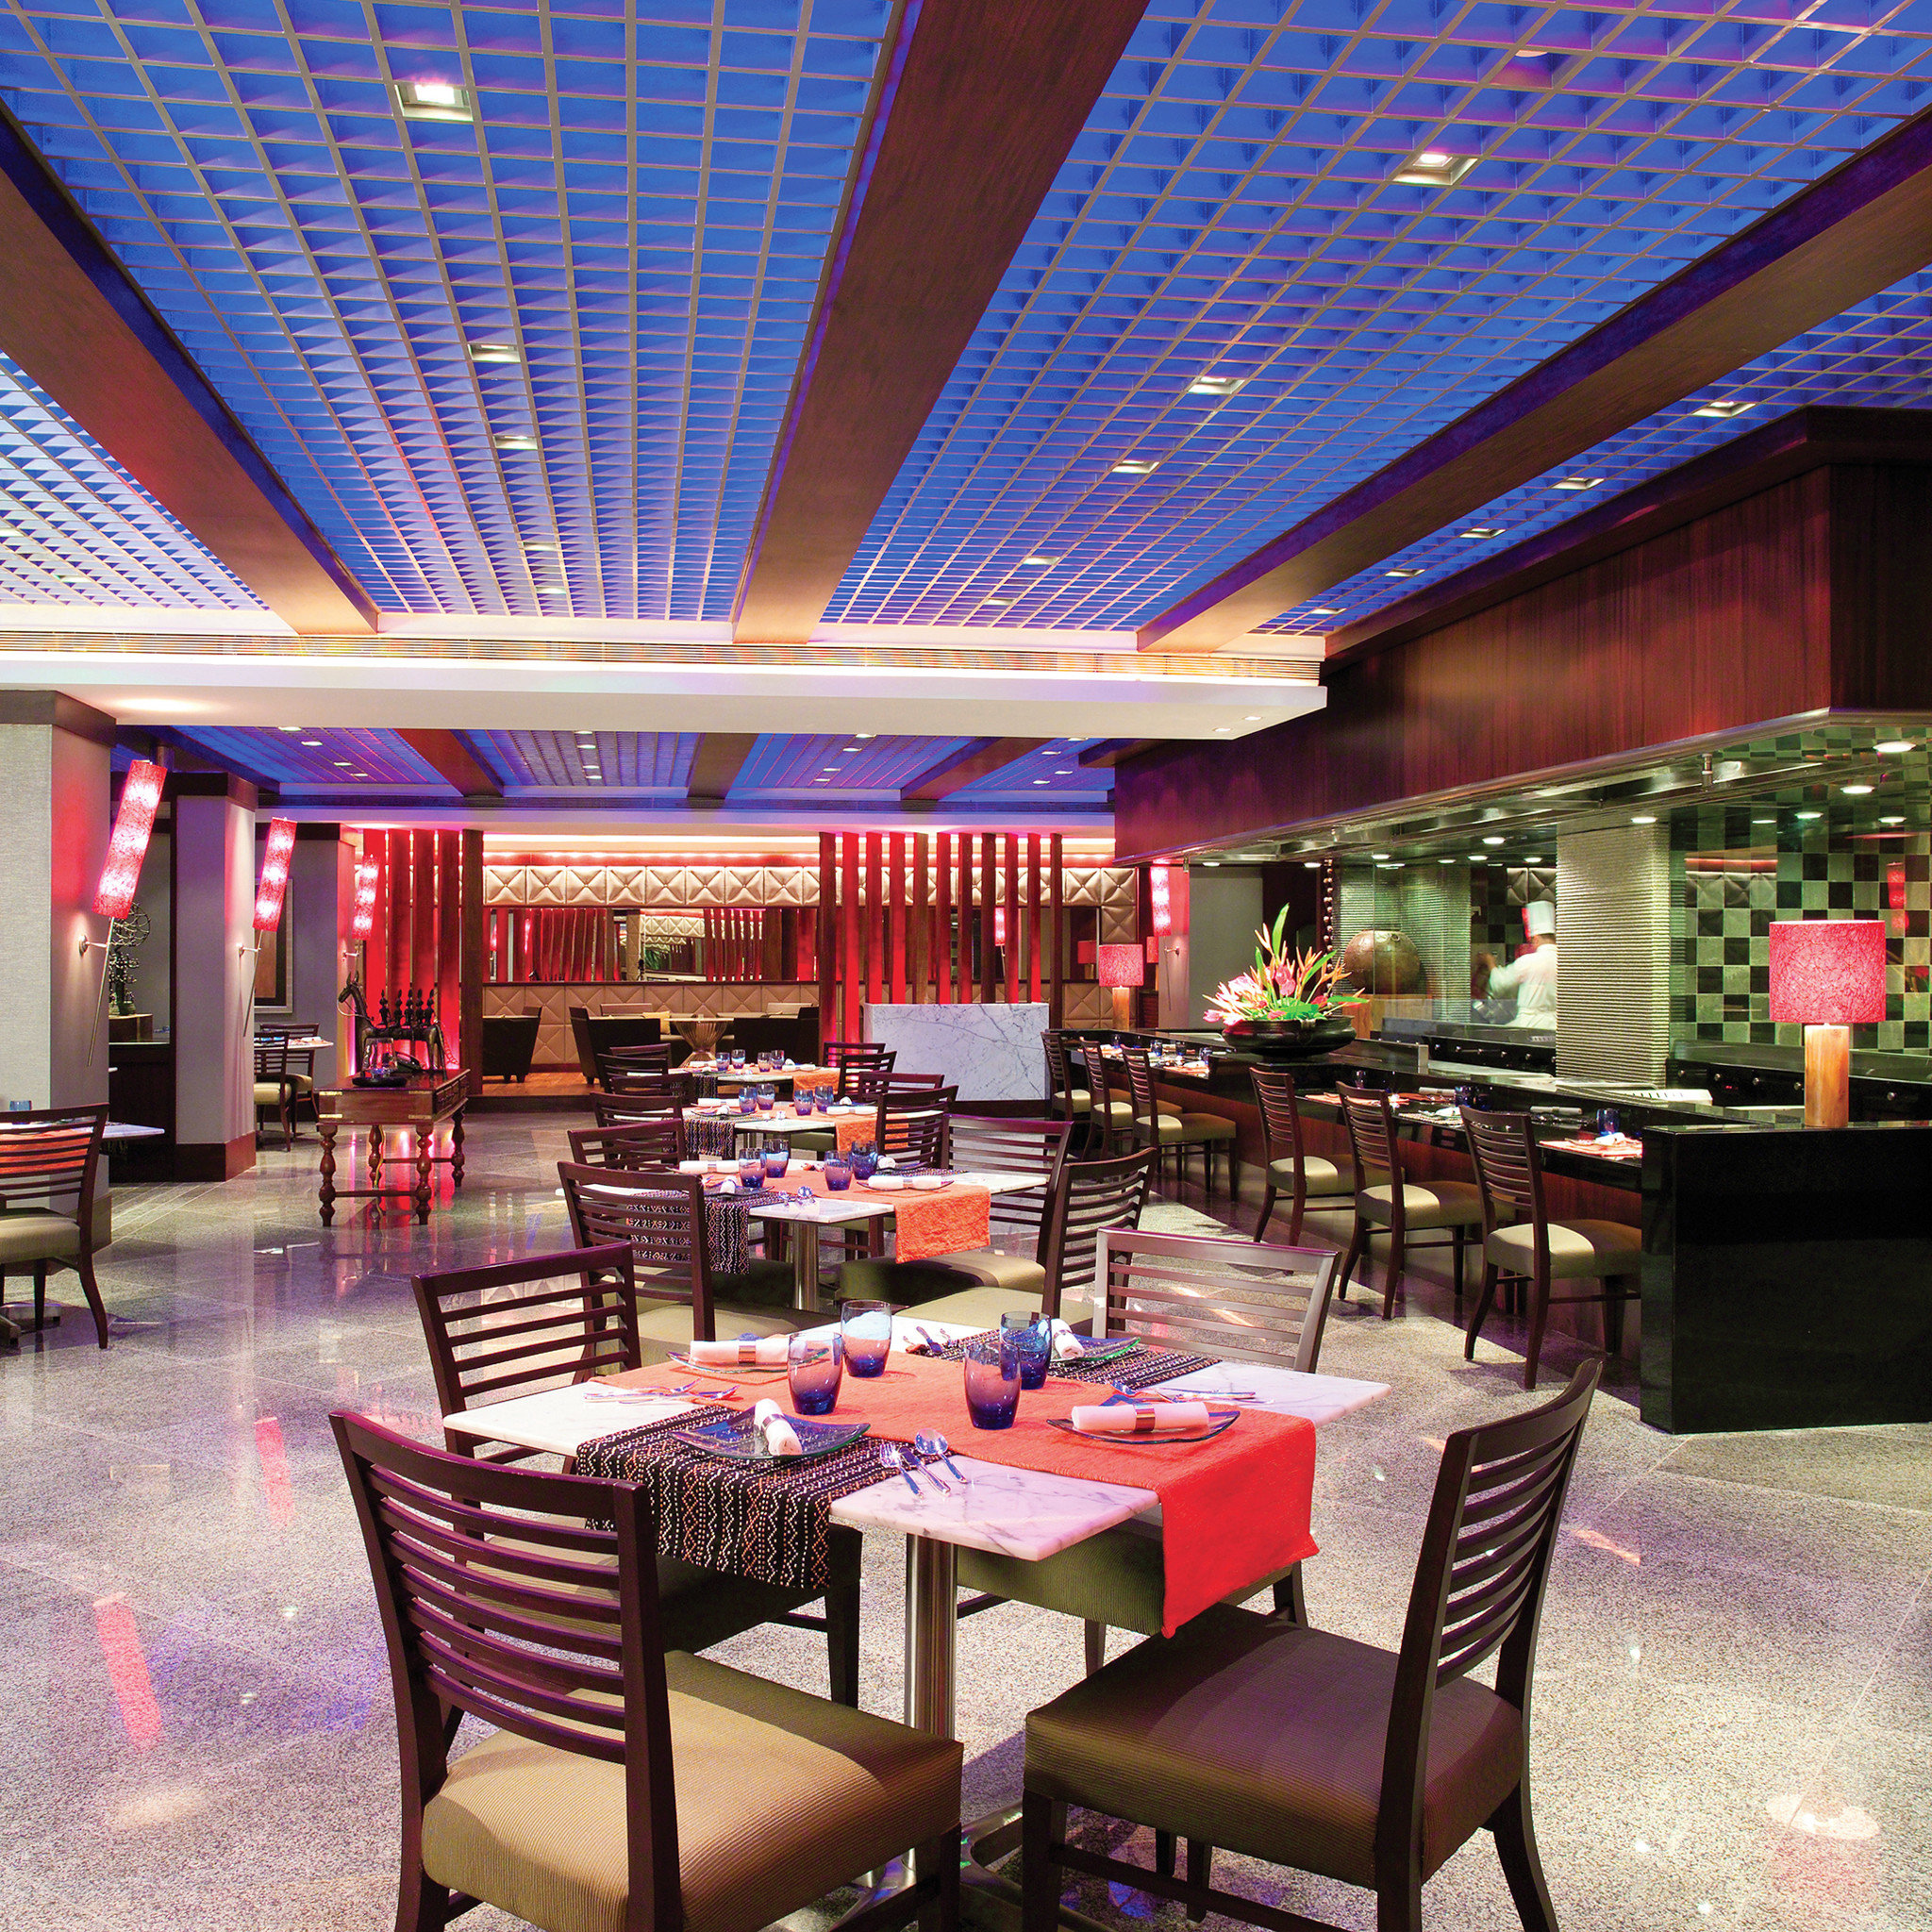 Dining Drink Eat Modern Romantic chair function hall restaurant Lobby convention center Bar nightclub food court Resort